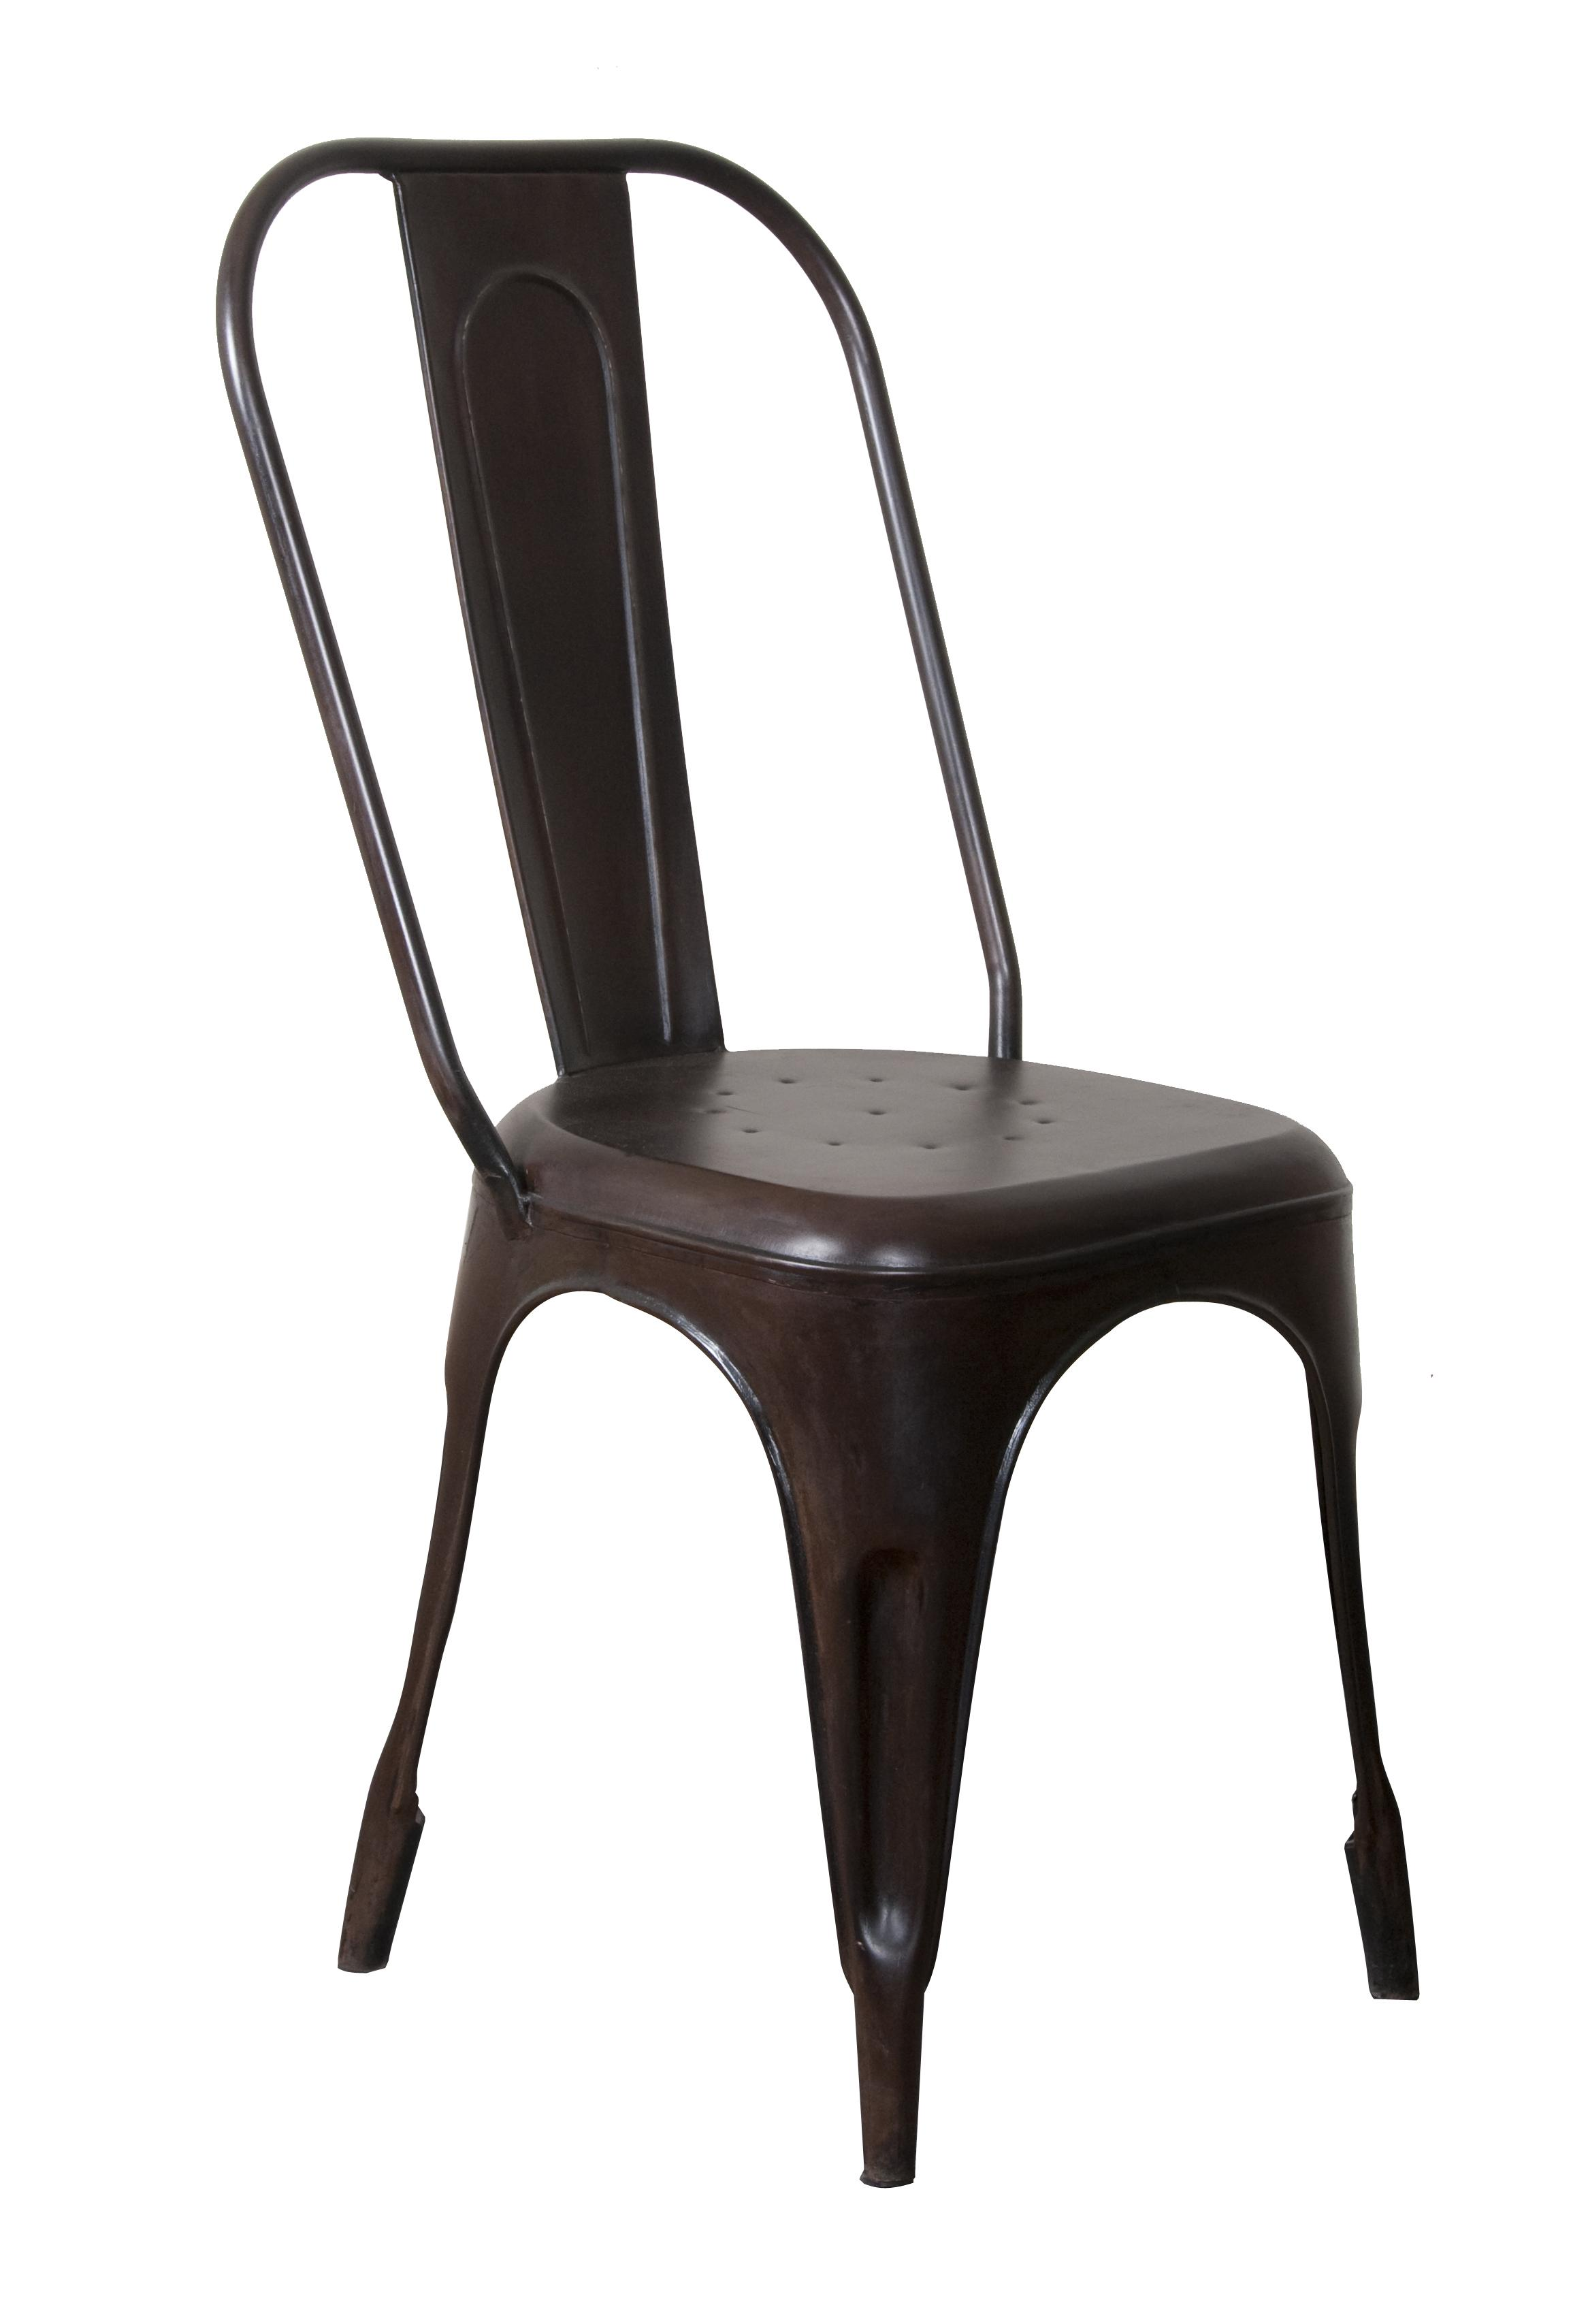 Jadu Accents Cello Chair 2-Pack by Coast to Coast Imports at Baer's Furniture